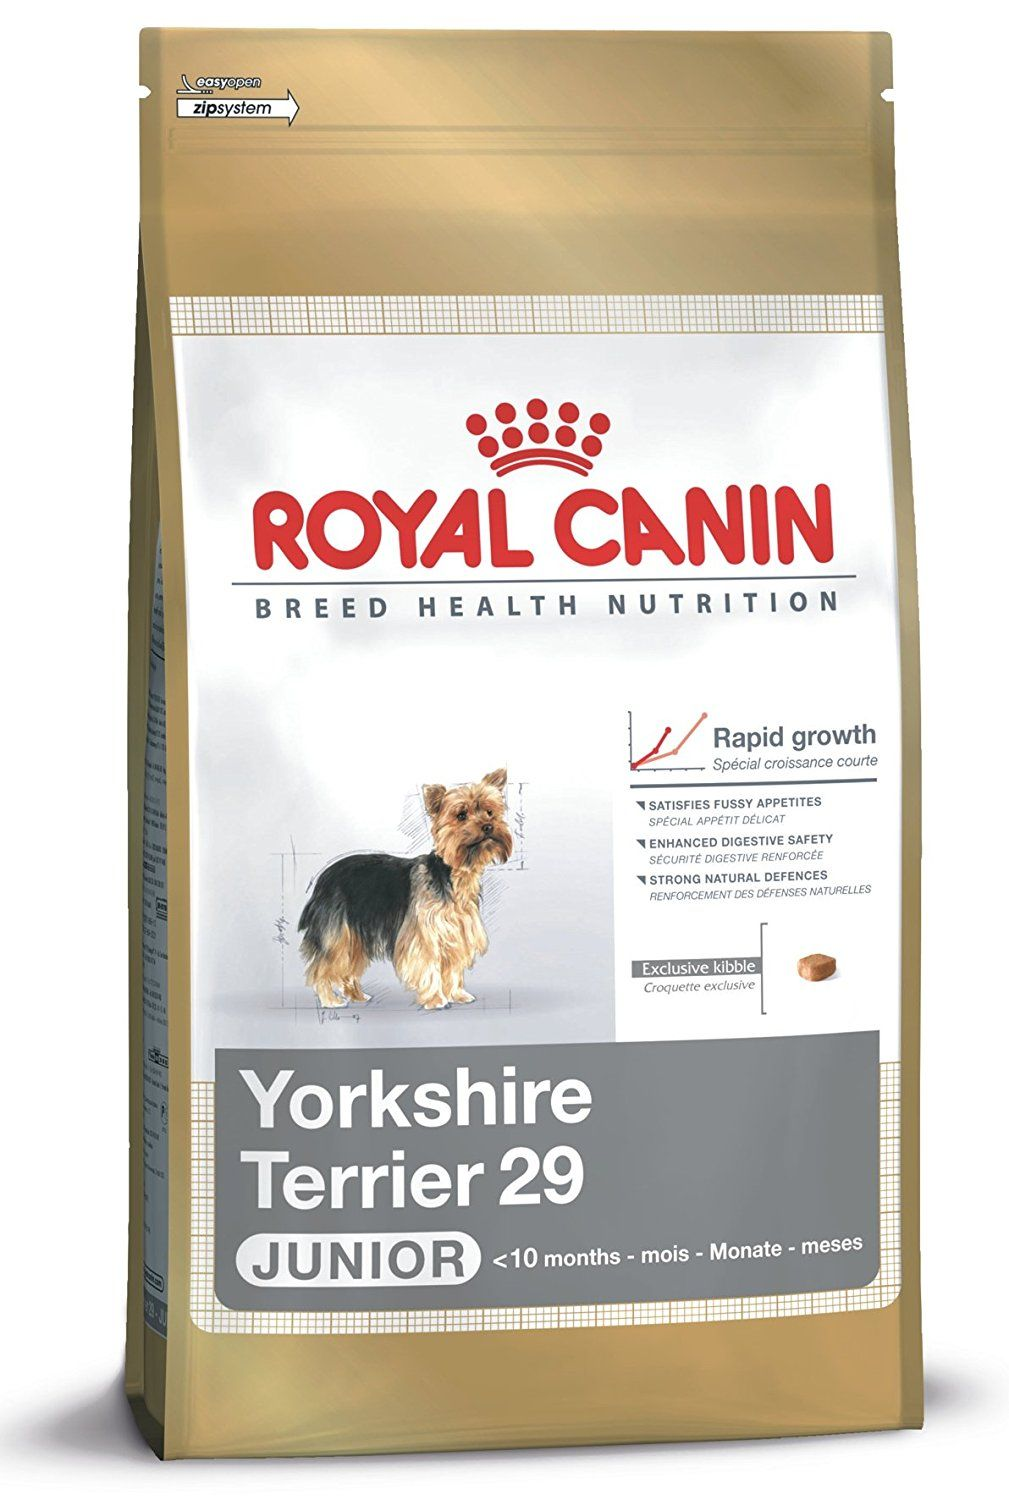 Royal Canin Yorkshire Terrier Junior Dog Food 1 5kg Trust Me This Is Great Click The Image Th Dog Food Recipes Dog Food Allergies Dog Food Comparison